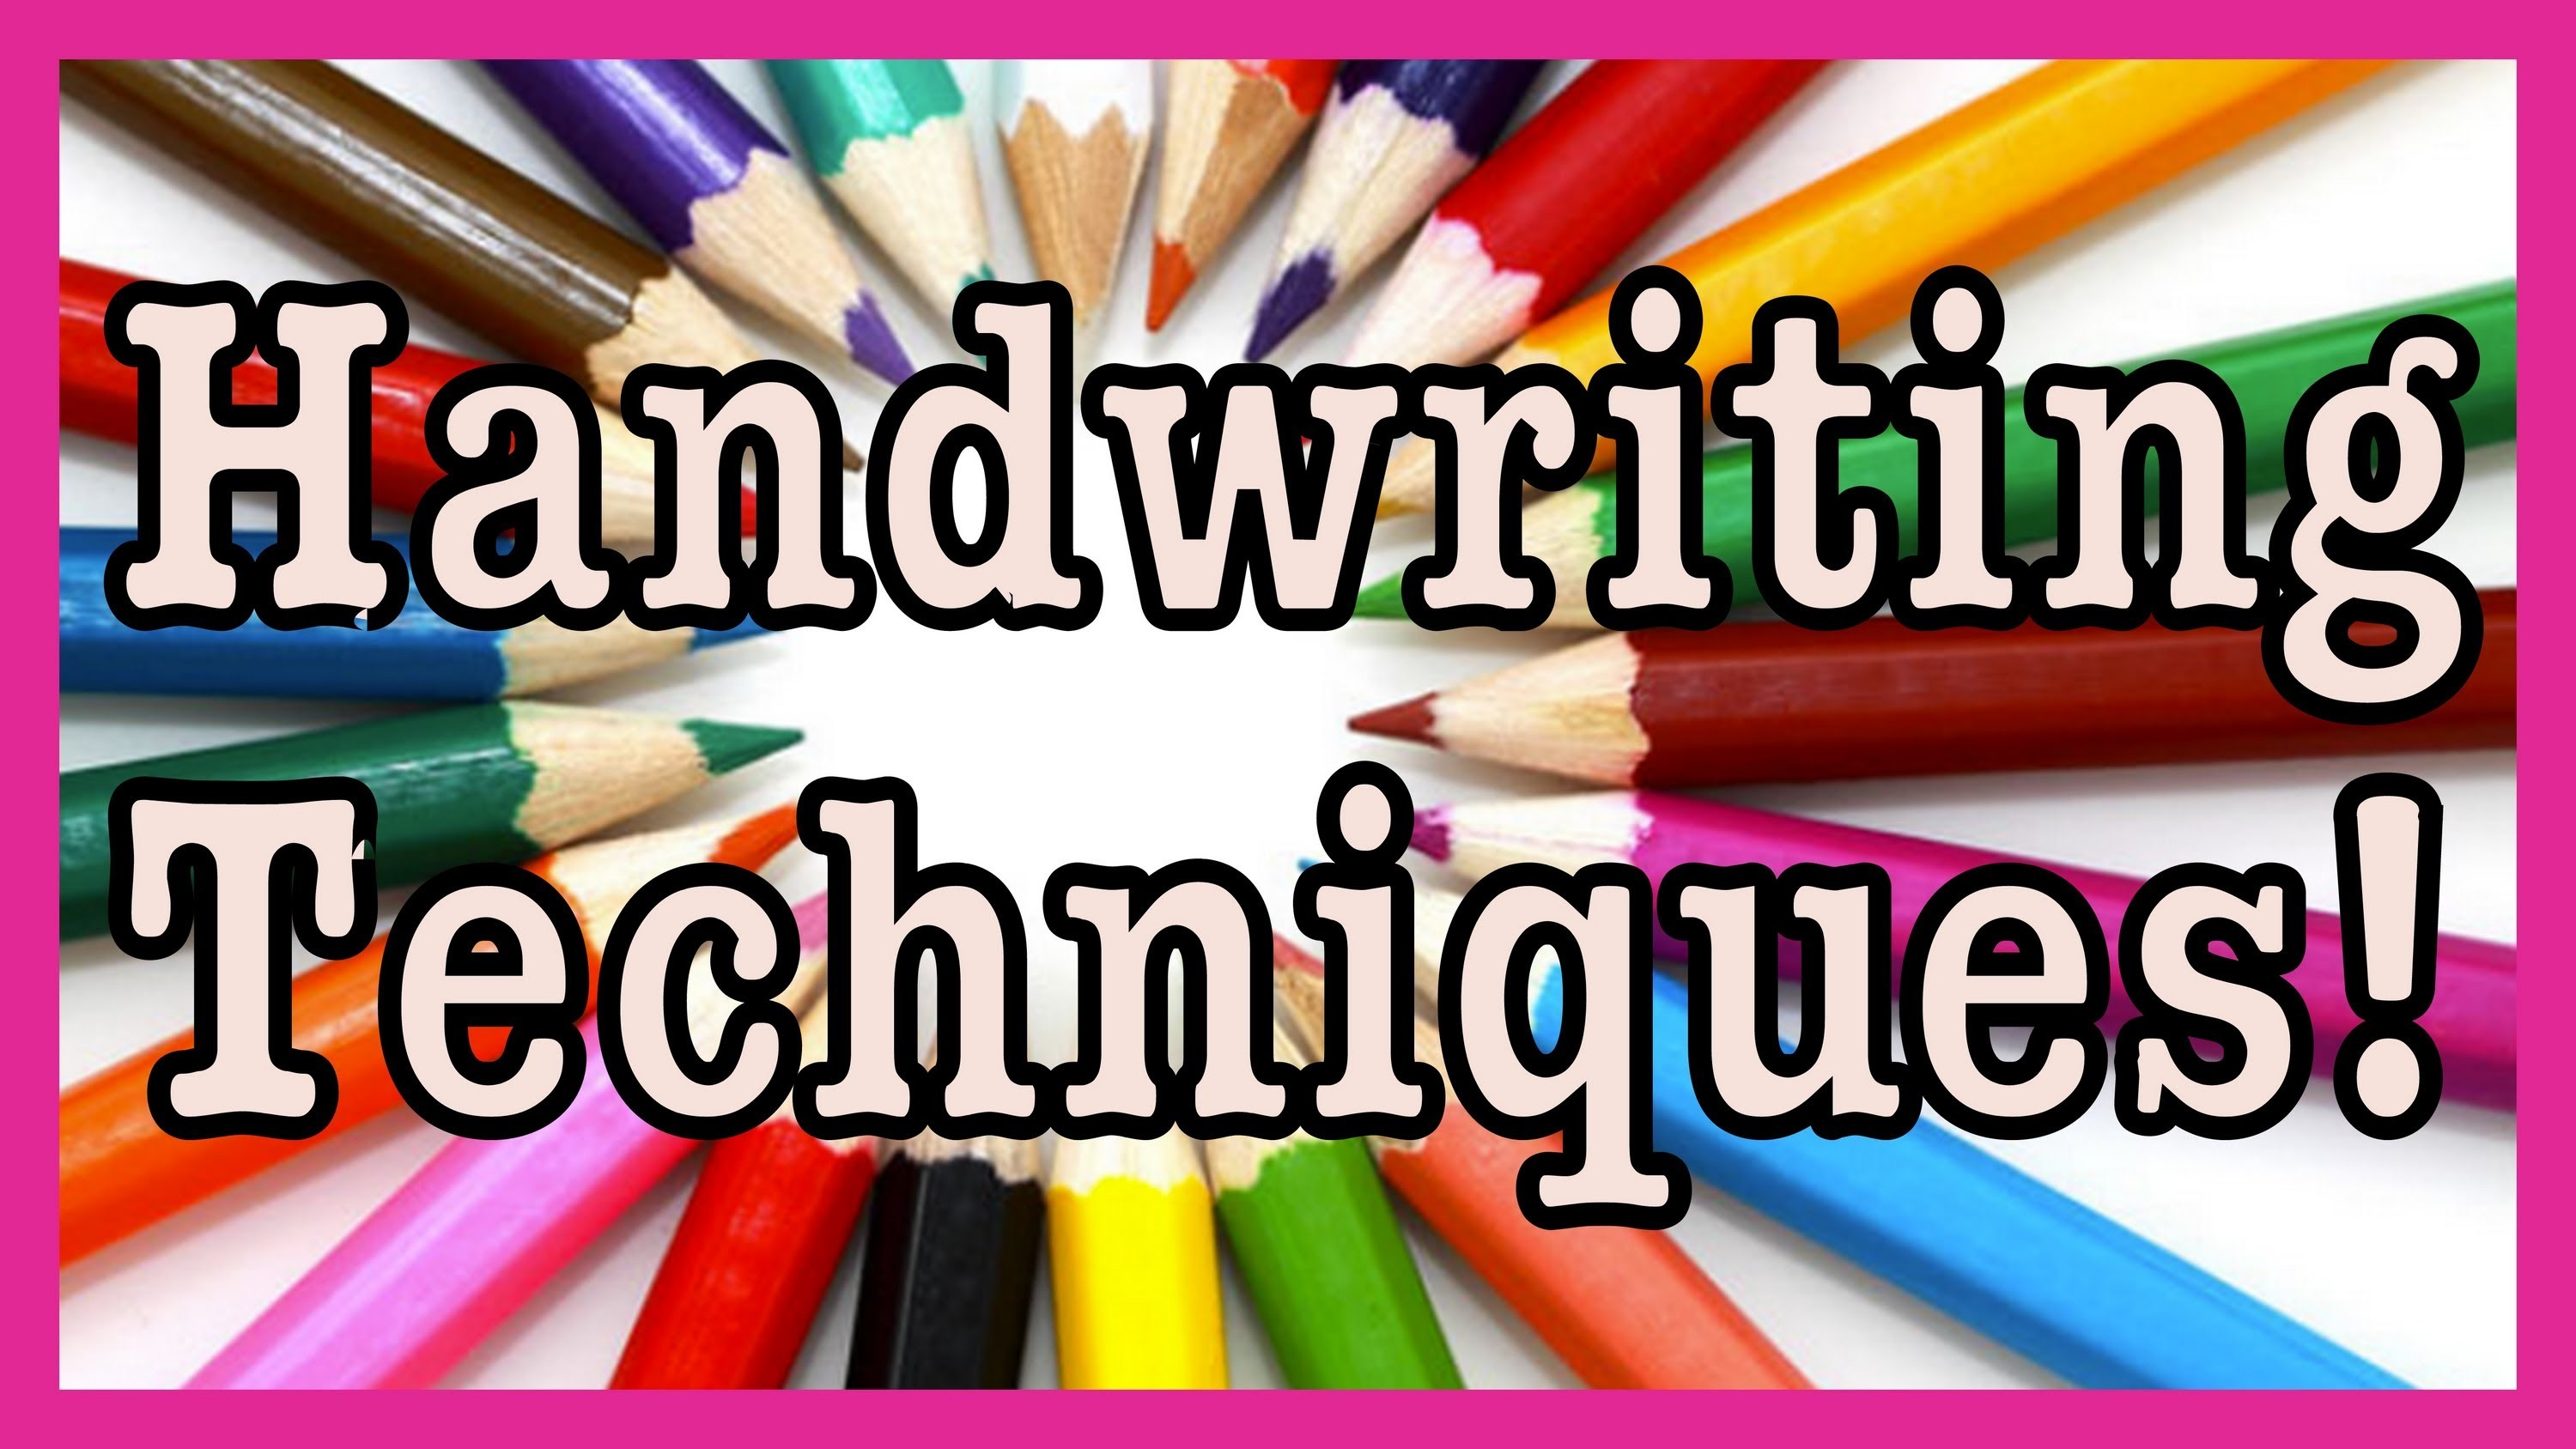 Handwriting Techniques! - Stylin' Font Saturday!